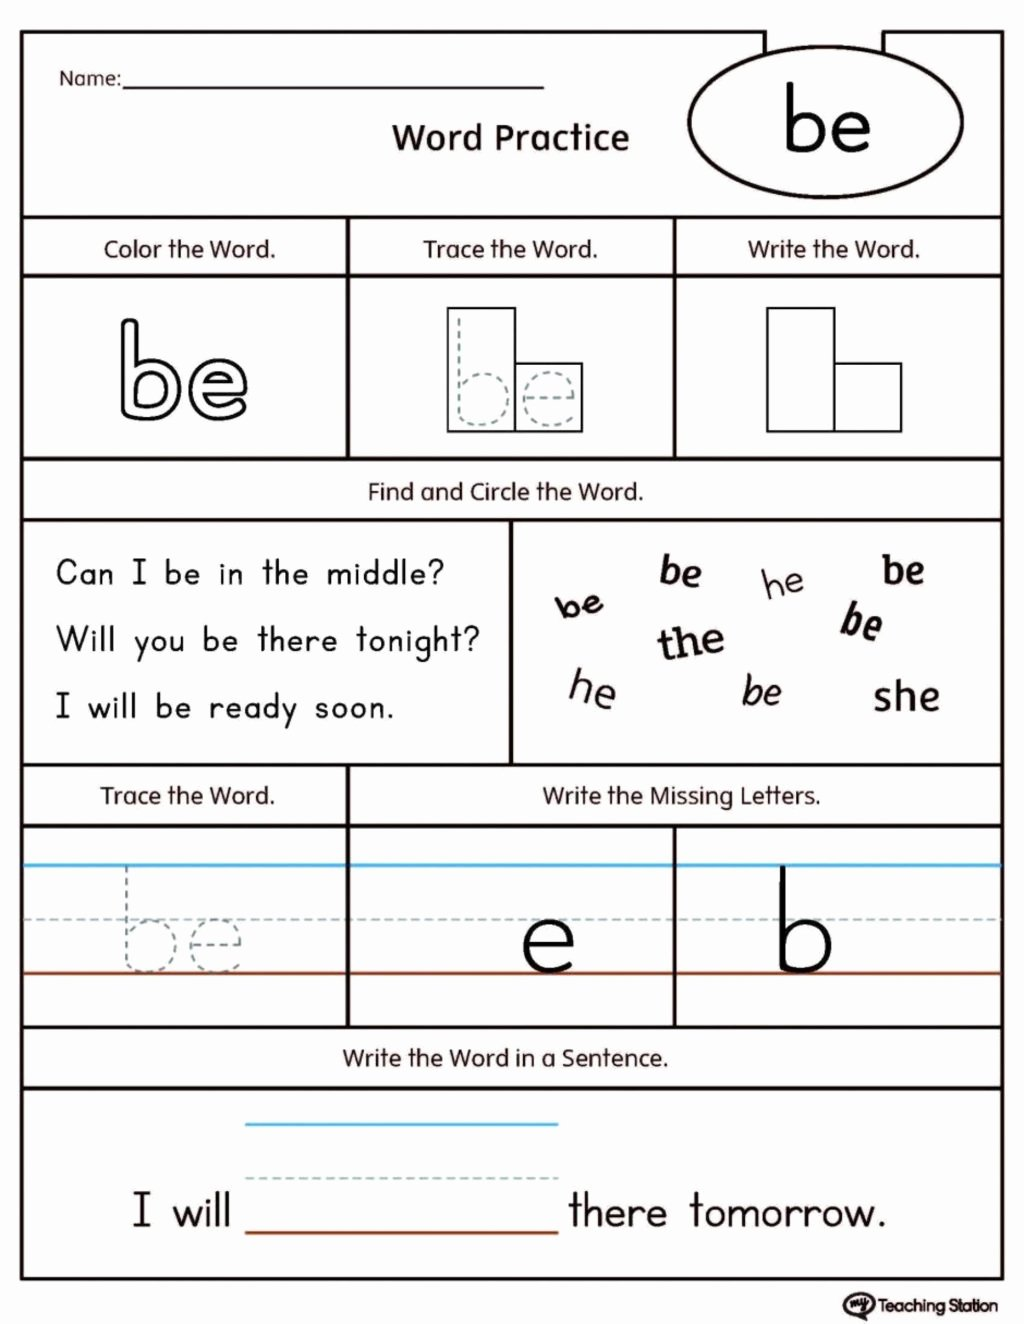 Free Printable Sight Words Worksheets for Preschoolers top Worksheet Preschool Worksheet Sight Words to Printable